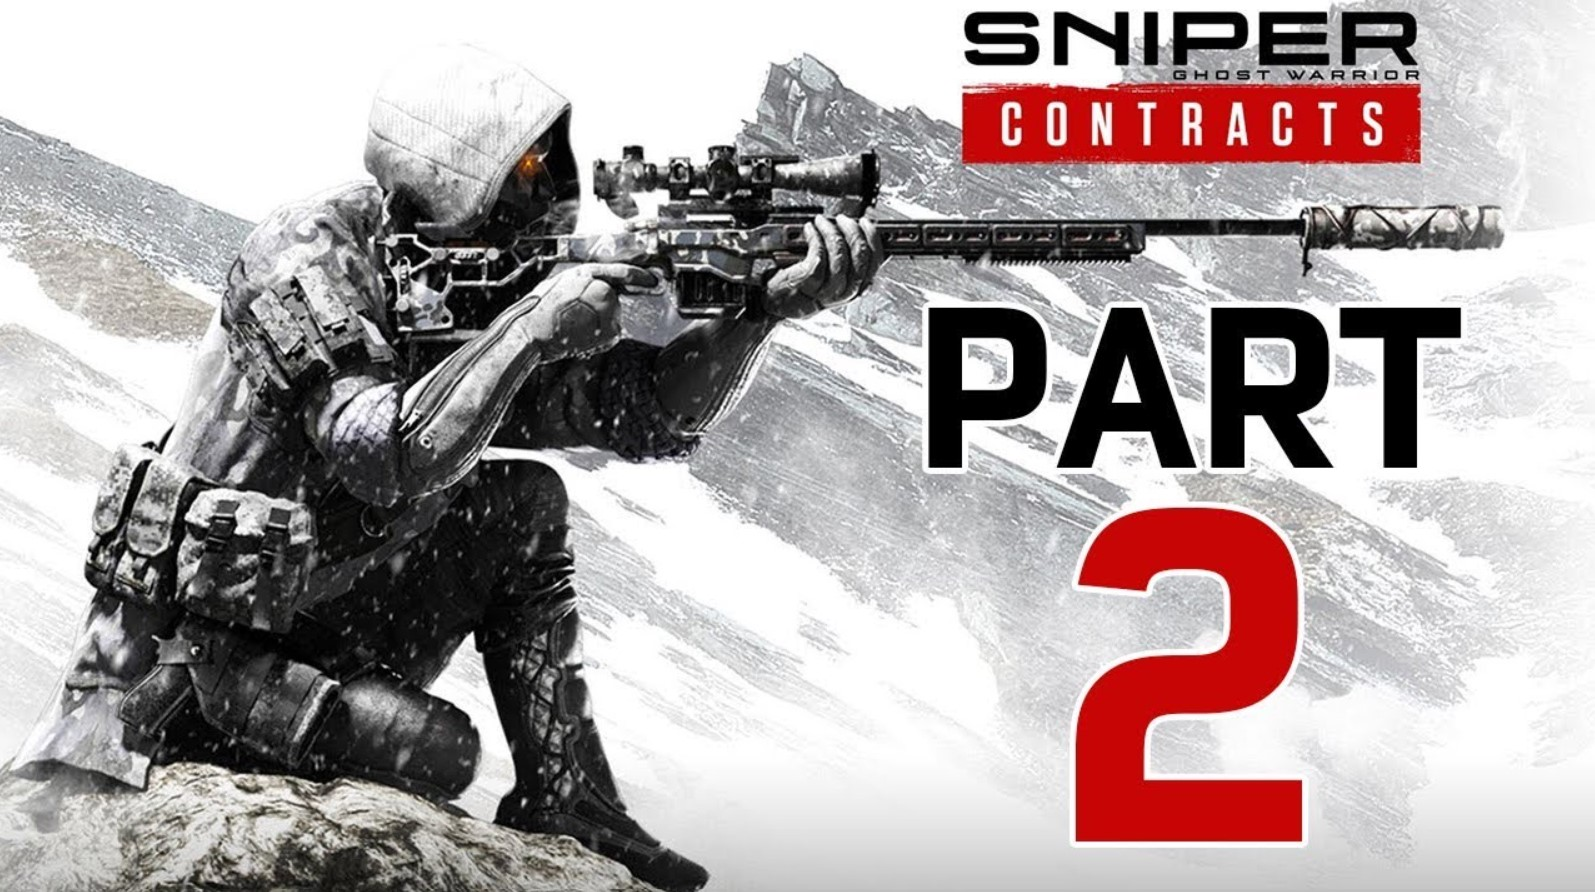 Sniper Ghost Warrior Contracts 2 Game For PS4 Free Download